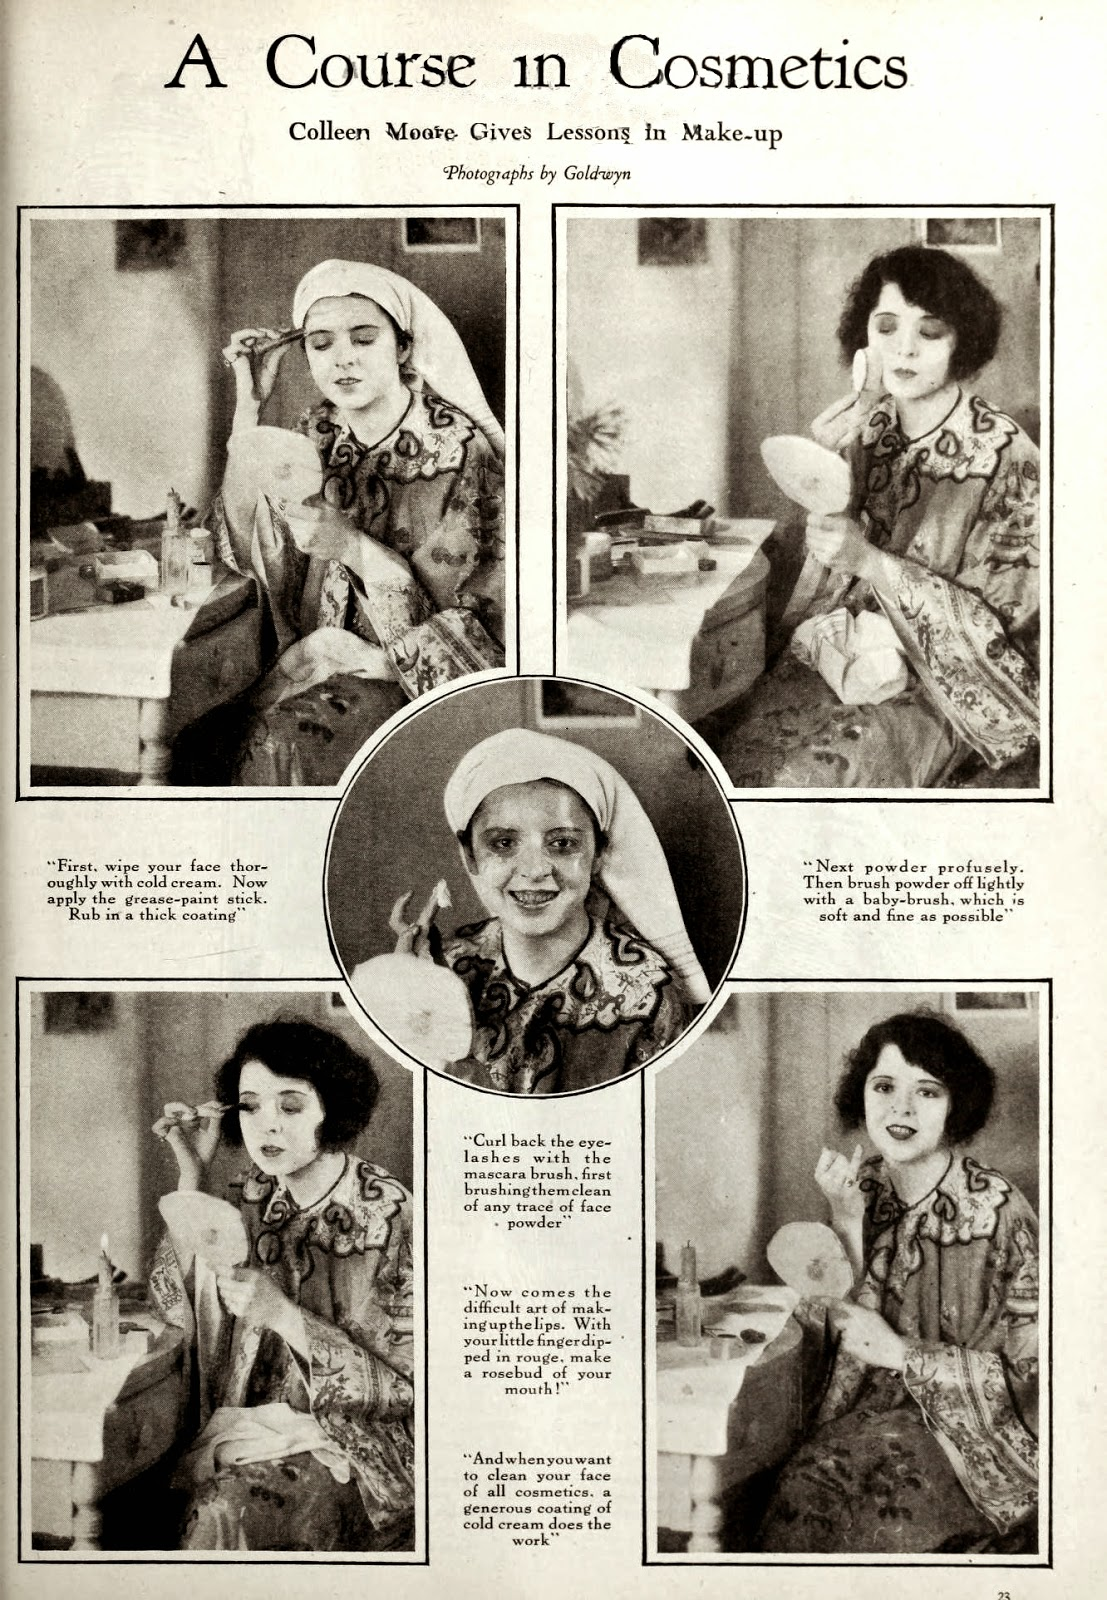 Colleen Moore gives lessons in make-up